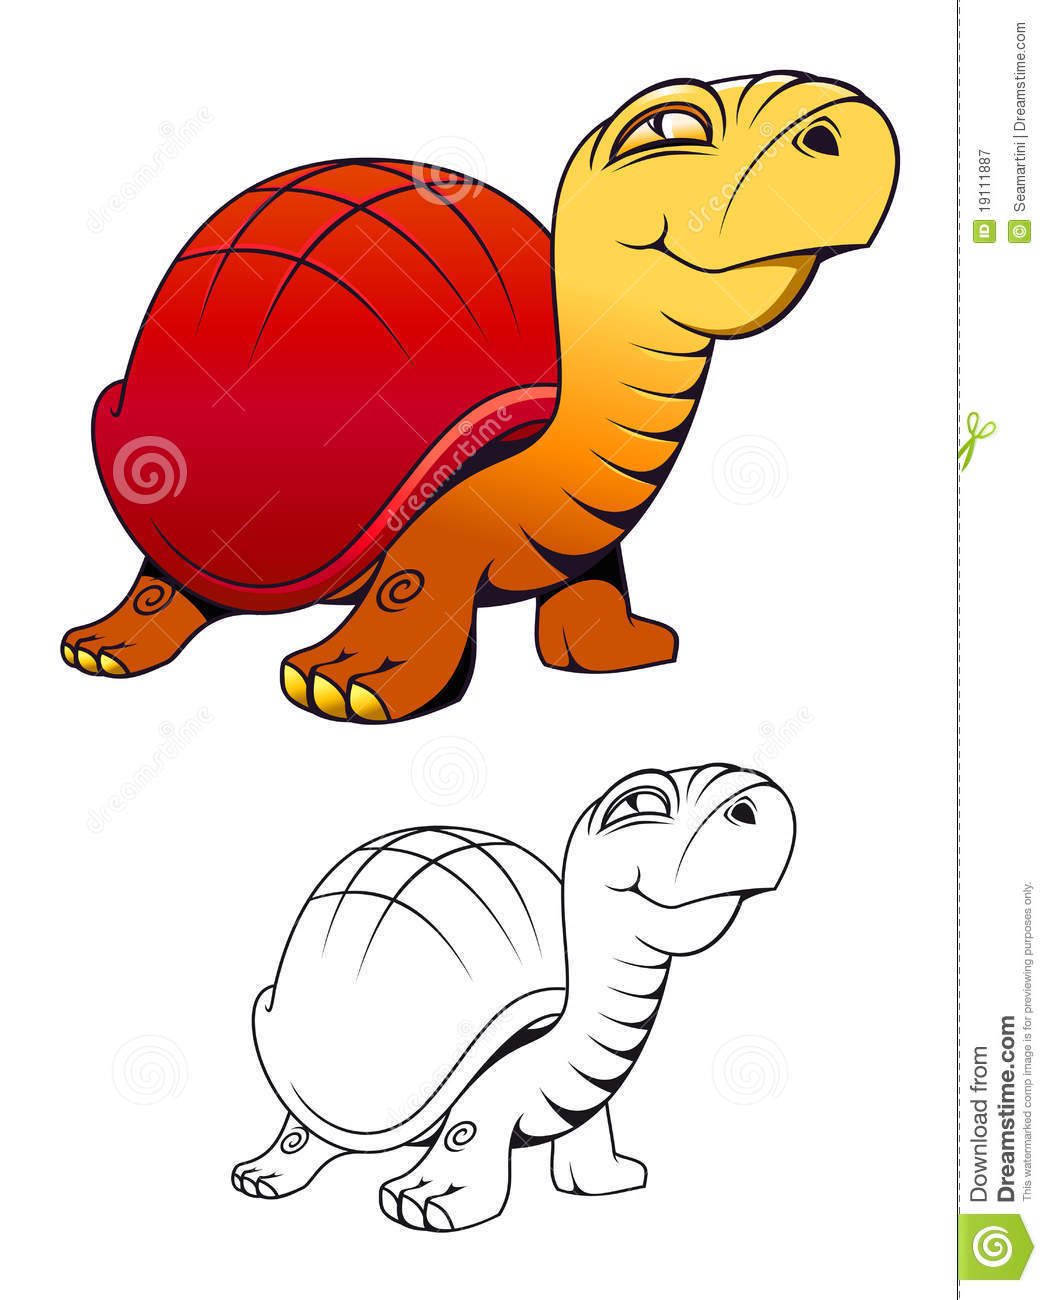 cartoon funny turtle royalty free stock photography image 19111887